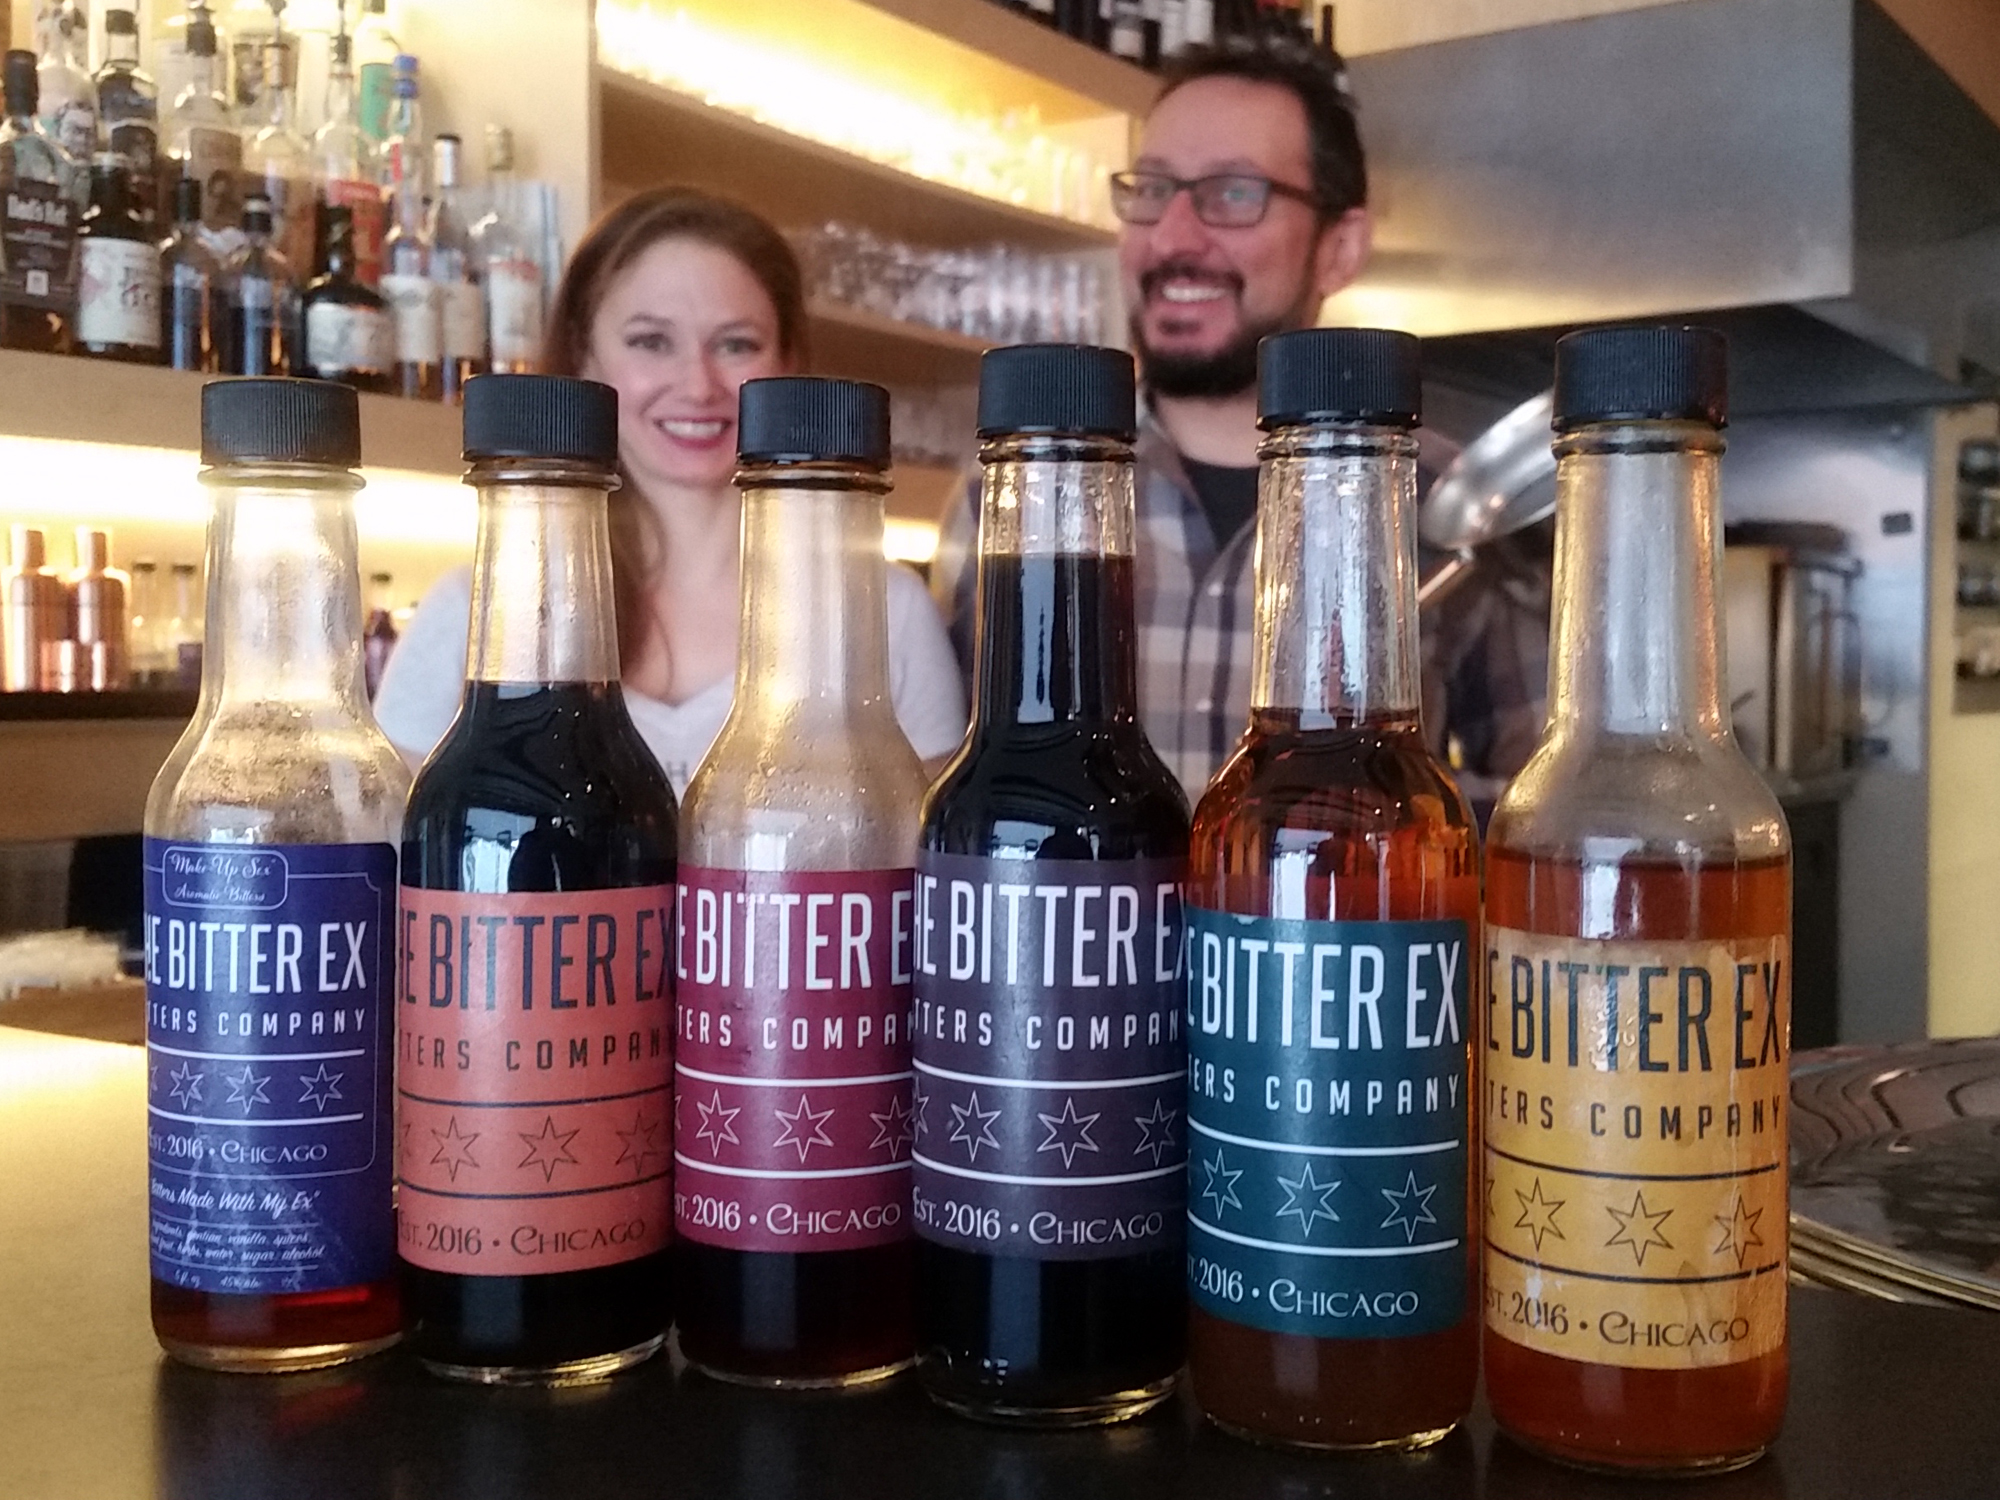 BITTER EX: GOING TOGETHER LIKE A COCKTAIL AND BITTERS